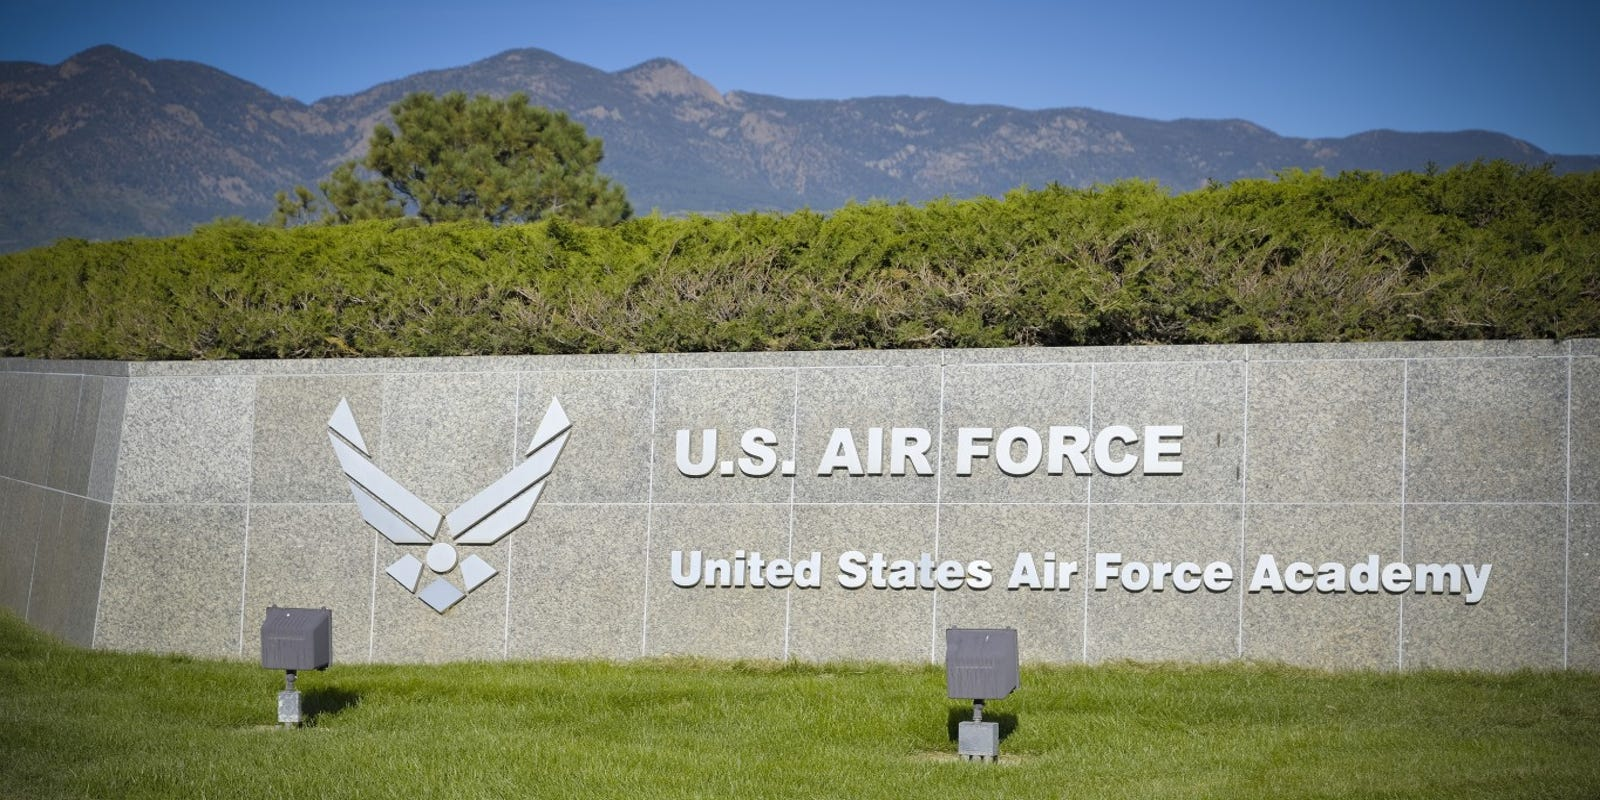 Two senior cadets, among 1,000 seniors isolated at the Air Force Academy, died by suicide within days